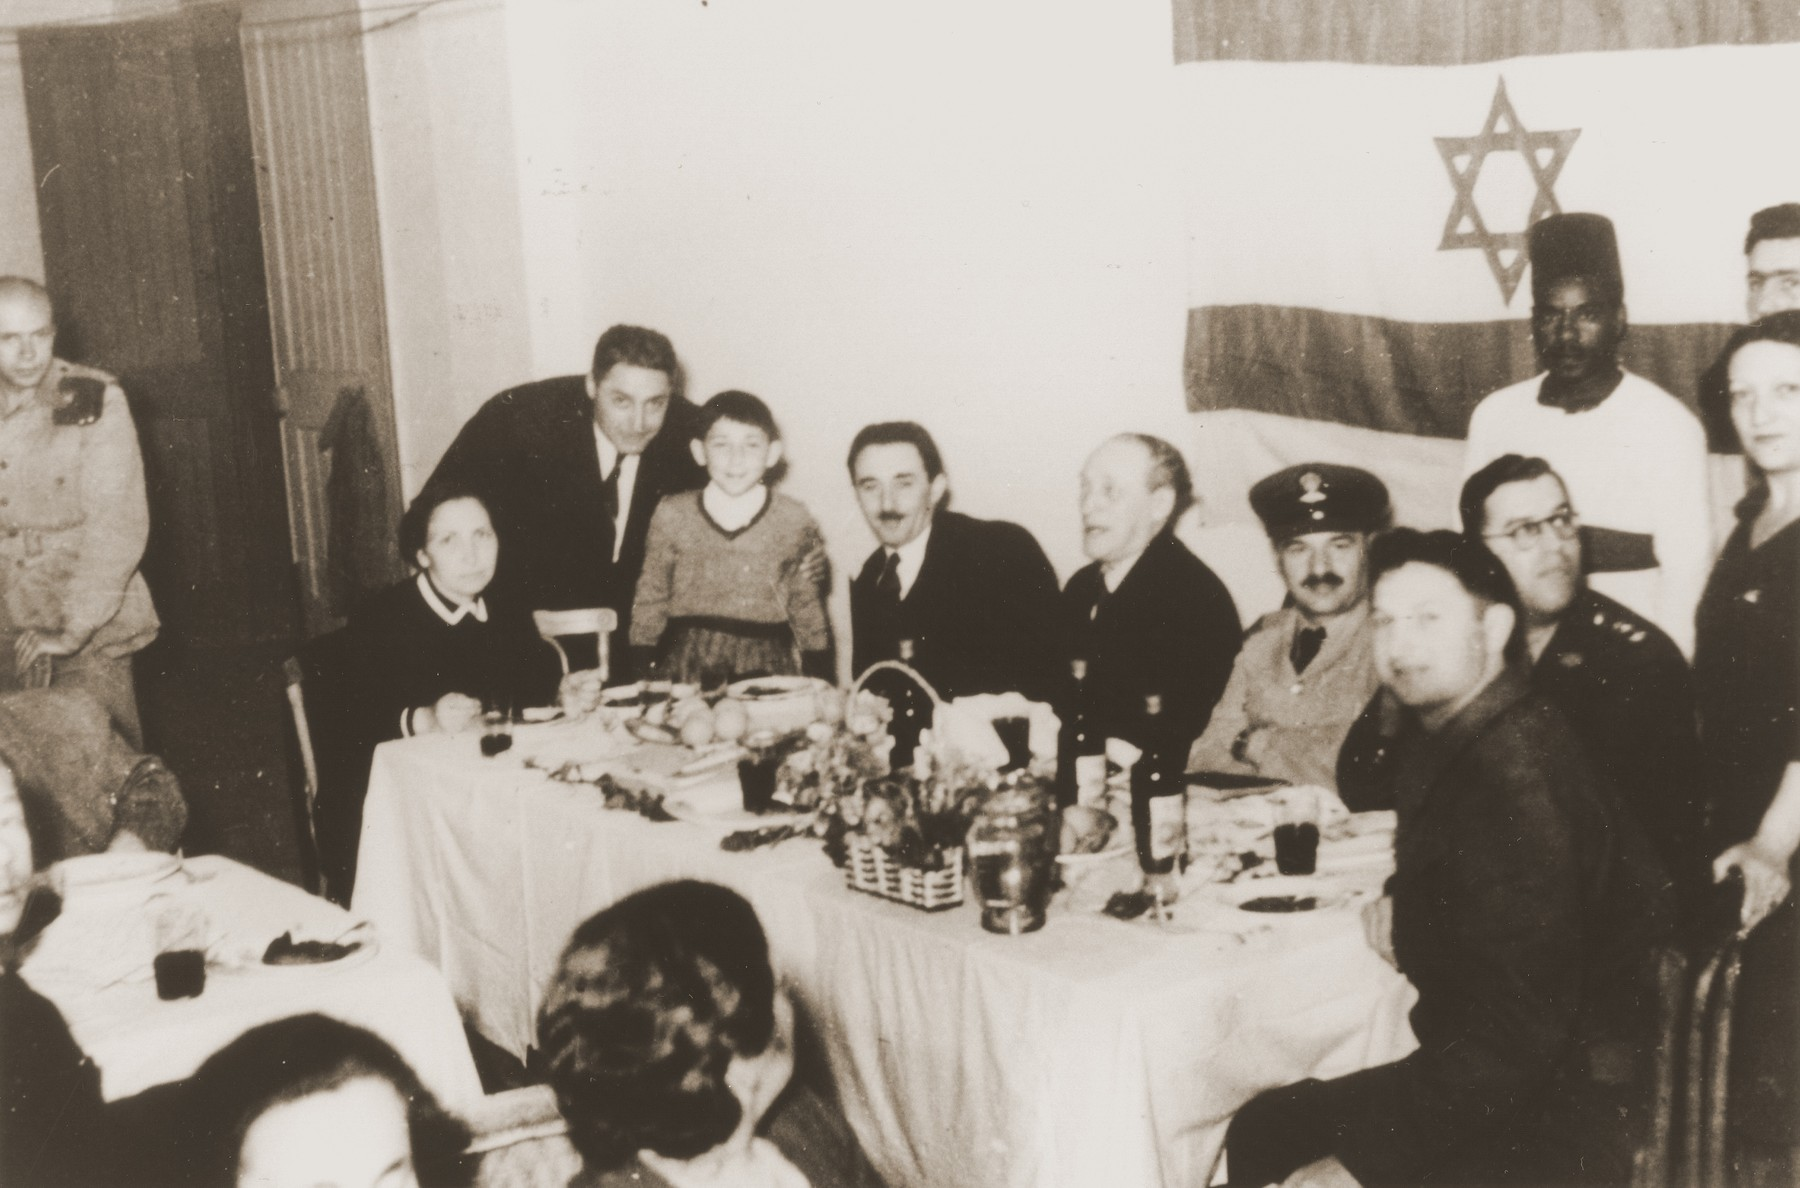 Dinner at the Jewish Soldiers' Club in Cairo.  Seated at the large table from left to right are, Tzipora, Chaim and Moshe Sharett; Dr. Yehuda Eben-Shmuel; Rabbi Israel Brodi; Abba Eban; and Rehavam Amir.